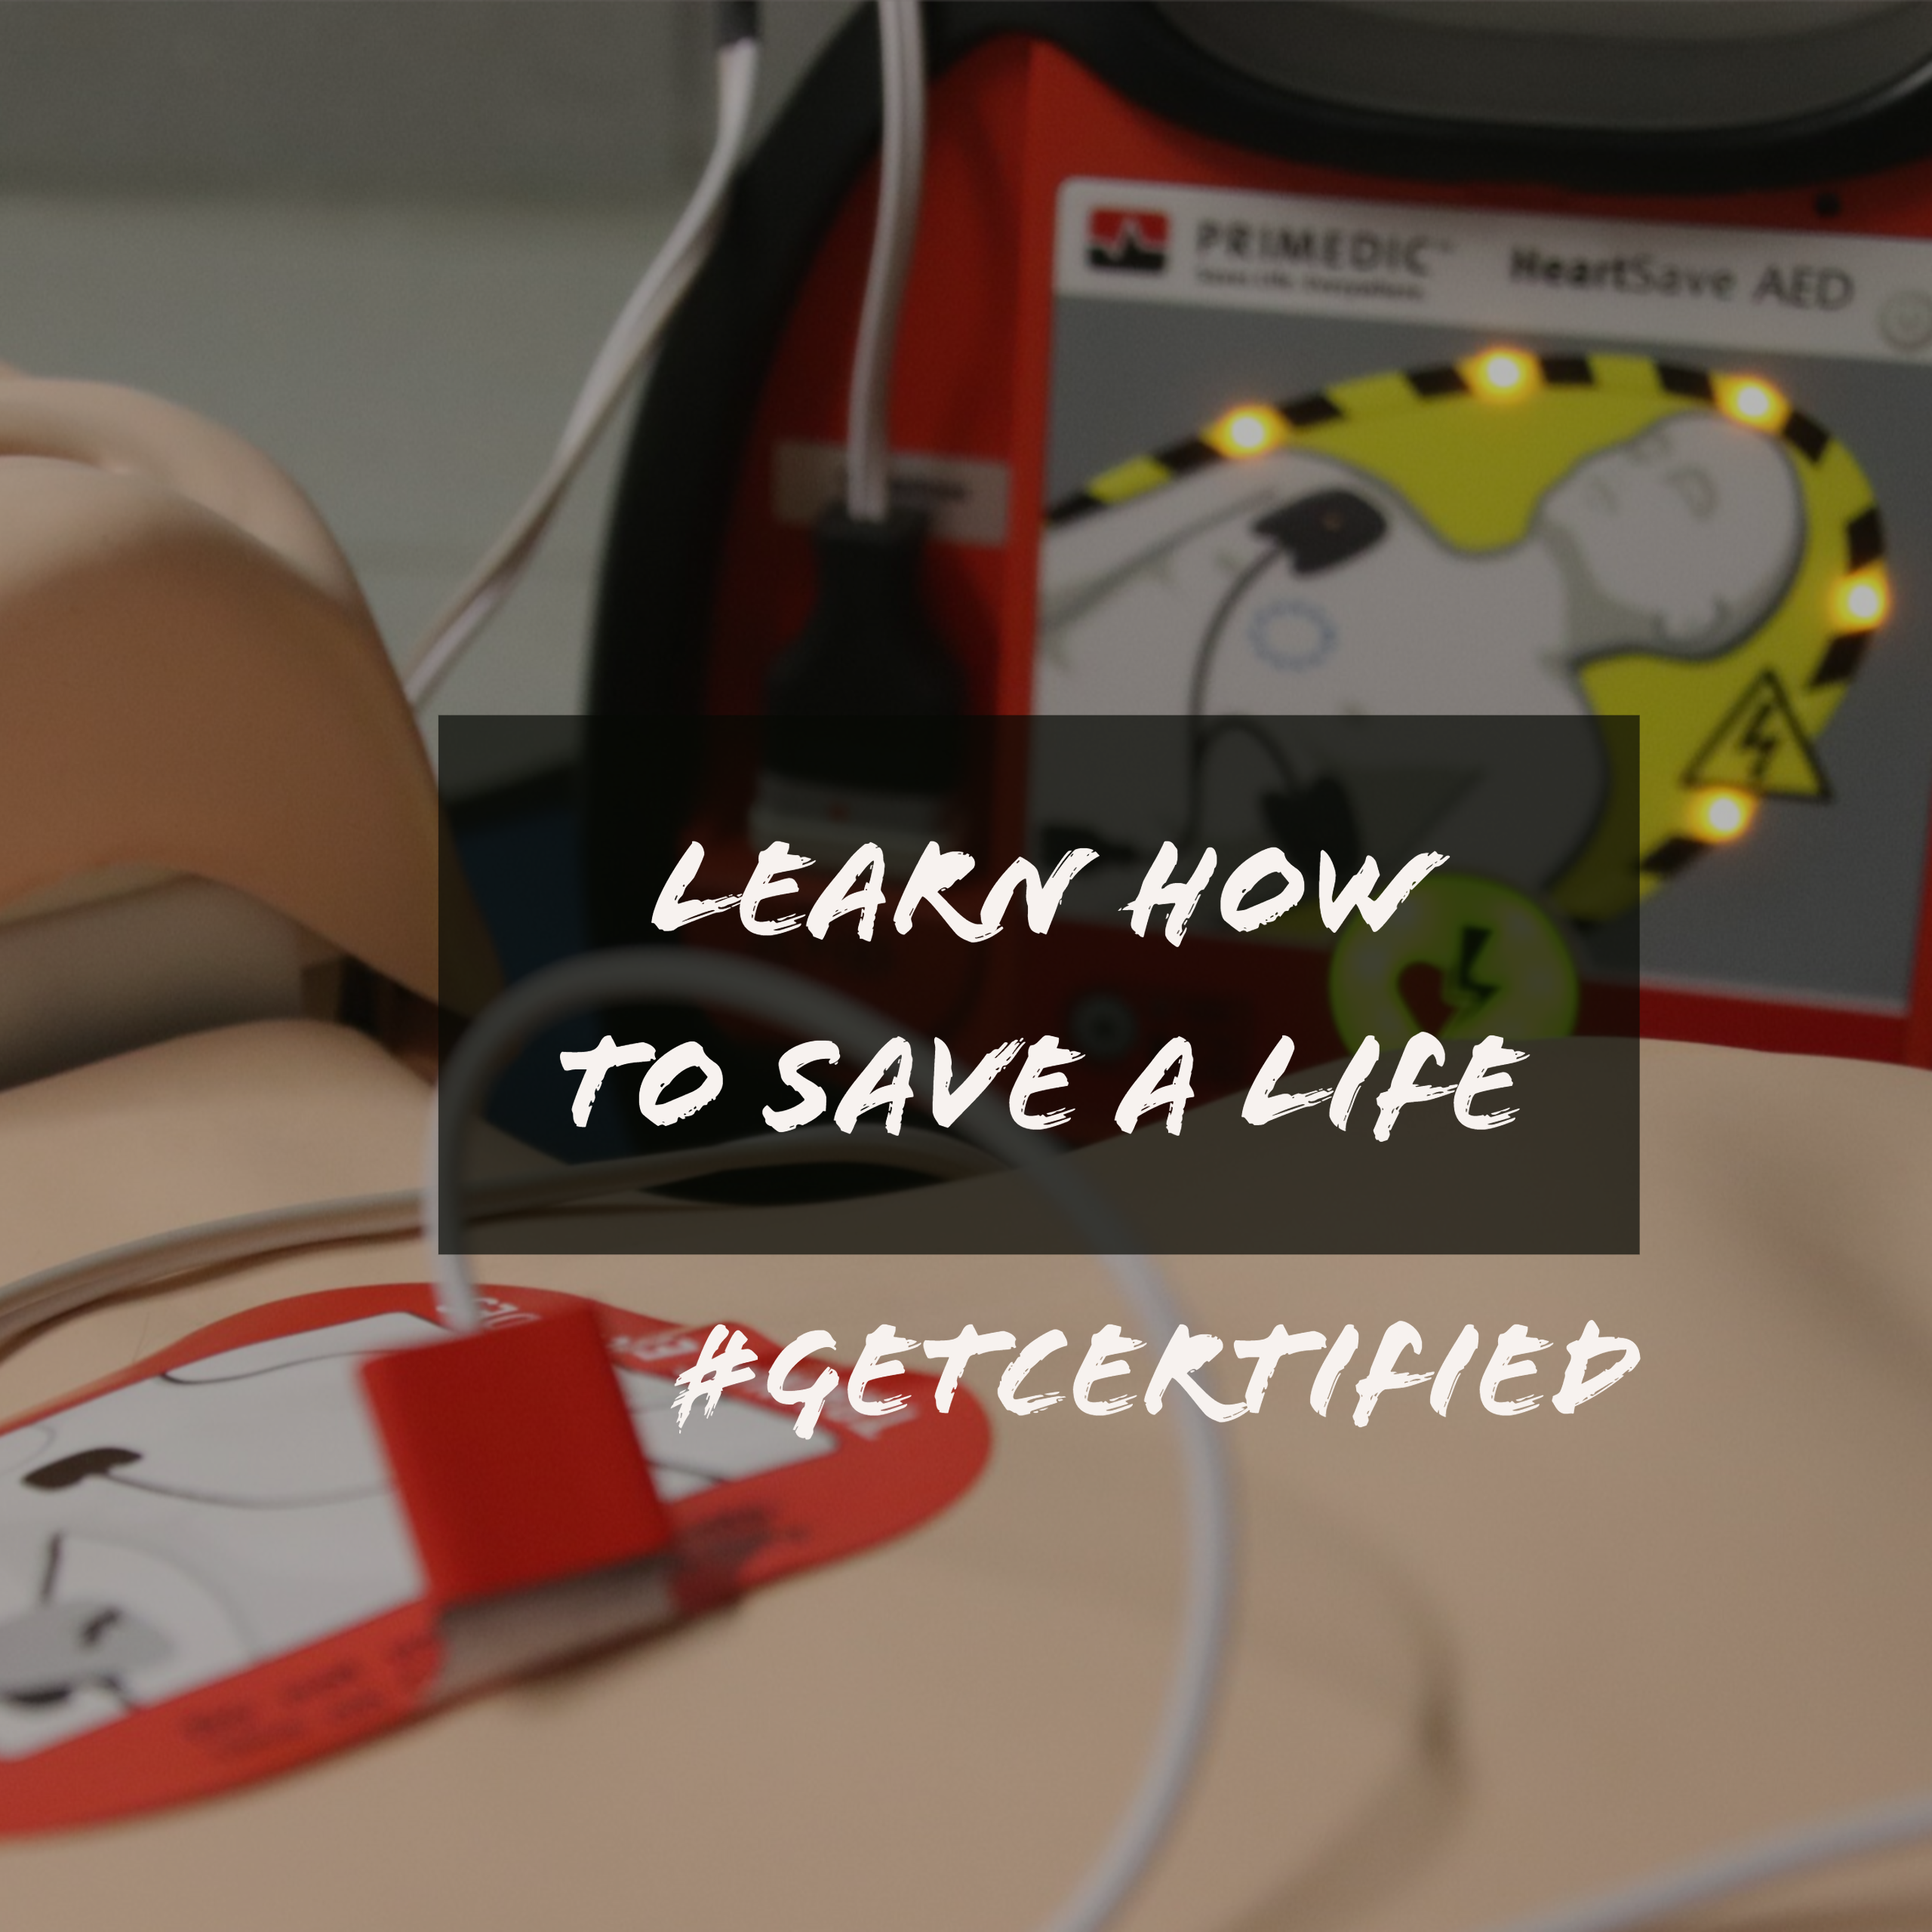 #getcertified how to save a life